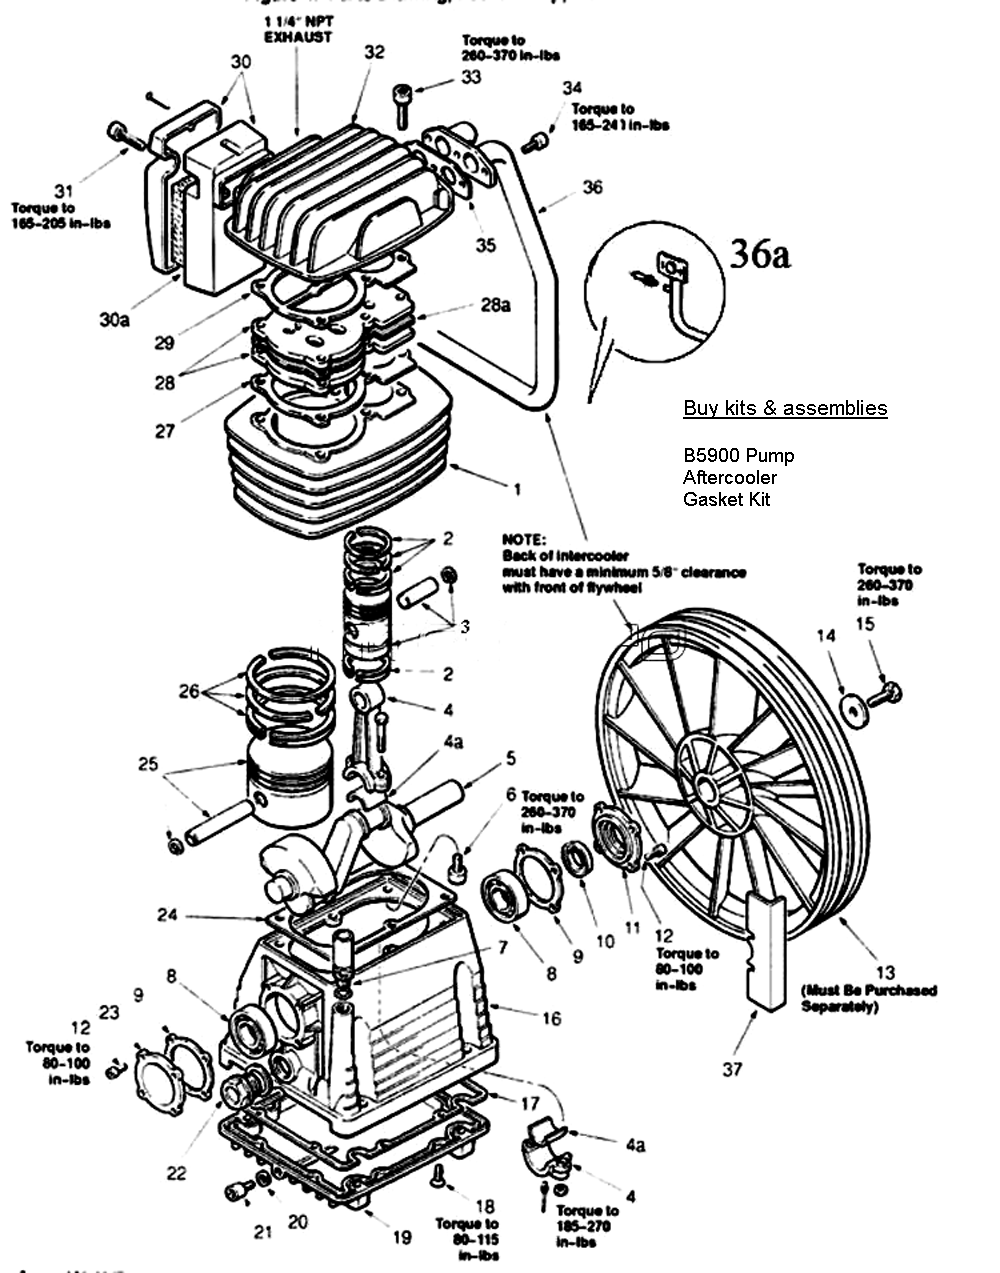 [EBOOK-7045] Ingersoll Rand Air Compressor Parts Manual